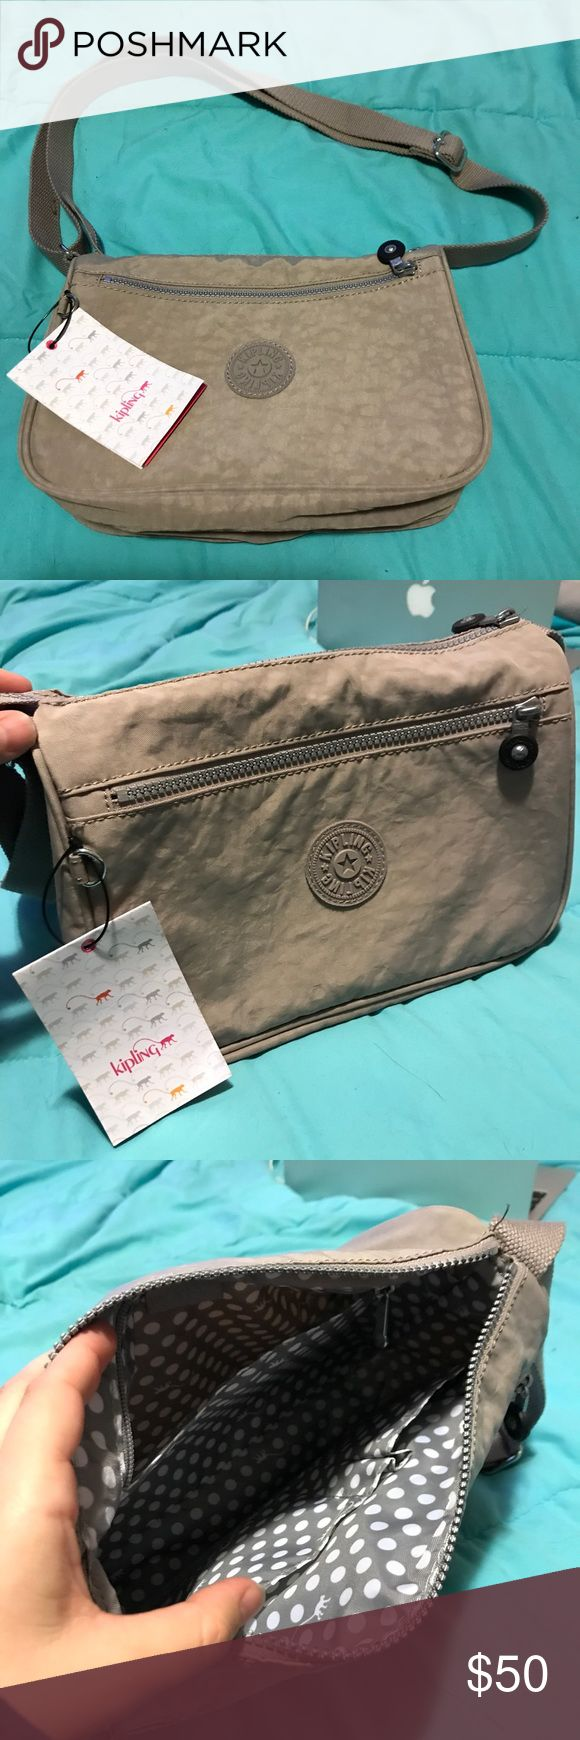 Kipling Callie in Dune Beige BNWT small messenger Brand new Kipling side bag with tags still attached. Light grey small messenger bag. Adjustable strap and tons of pockets. Perfect everyday bag. About 13 inches across. Never been used. Kipling bag in sand / beige Kipling Bags Crossbody Bags